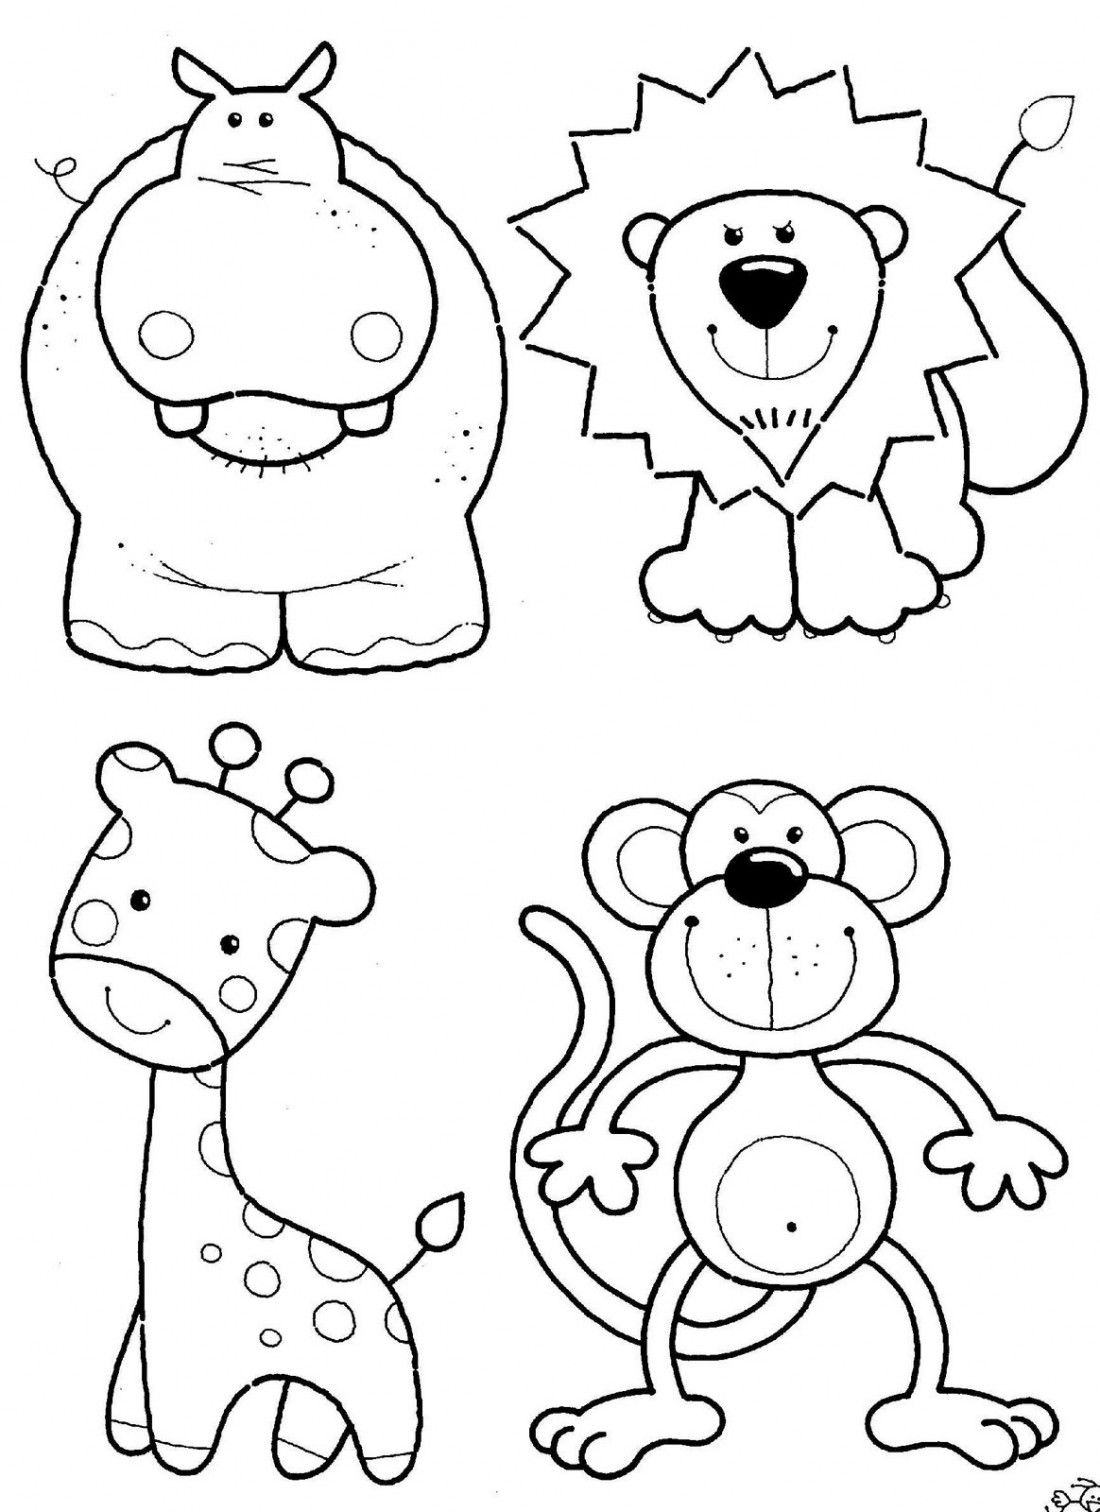 Worksheet Free Printables For Kids paps moldes e v a feltro costuras coloring pages animal free kids id color or paint these and use them